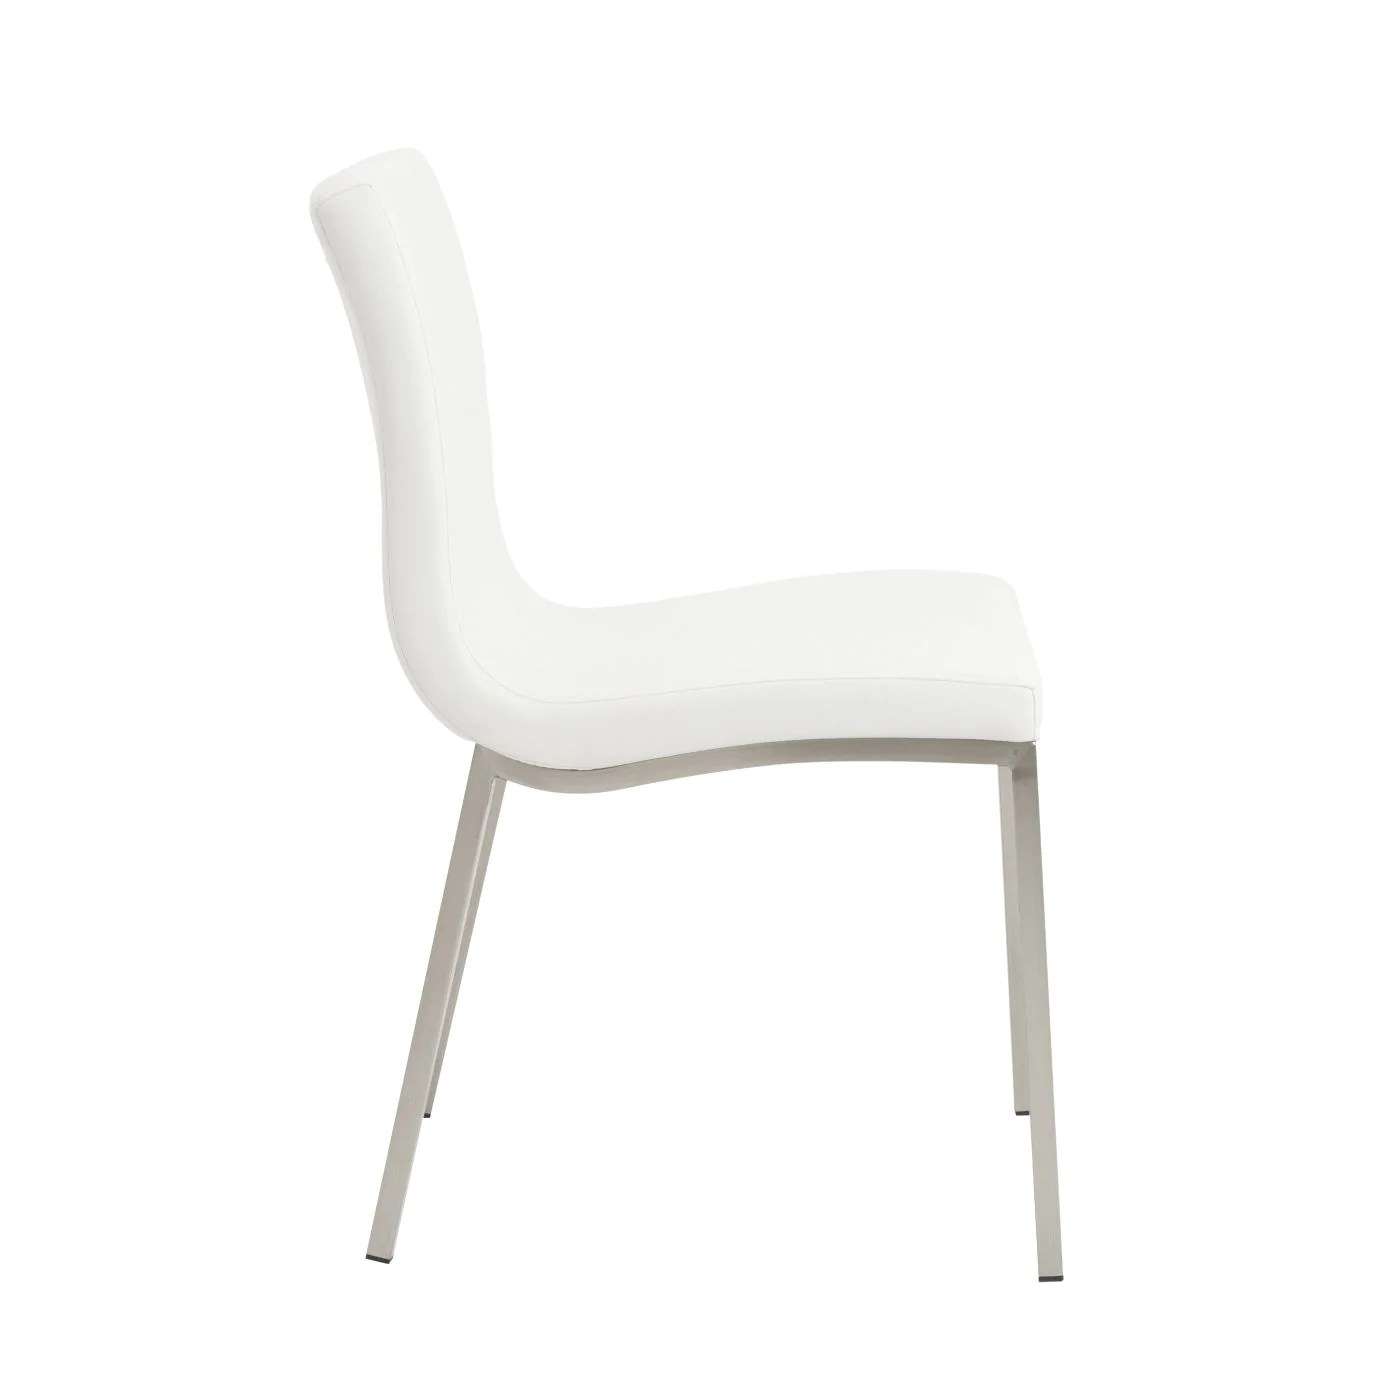 dining chairs with stainless steel legs chair cushion covers euro style scott in white brushed